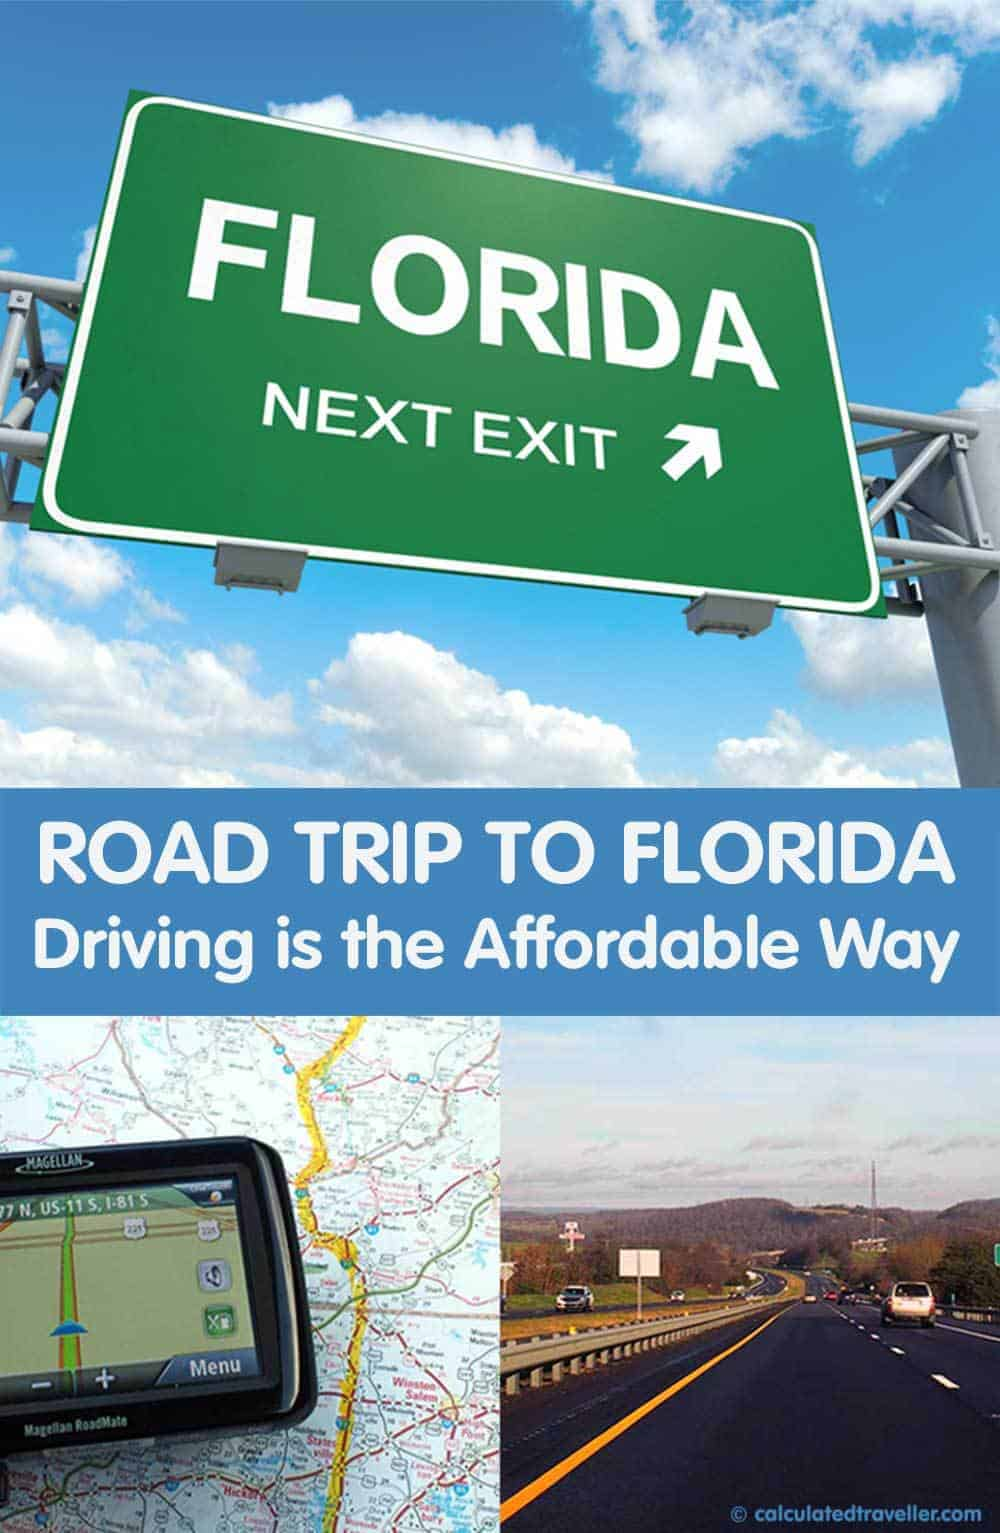 Road Trip to Florida: Driving is the Affordable Way | Calculated Traveller Magazine